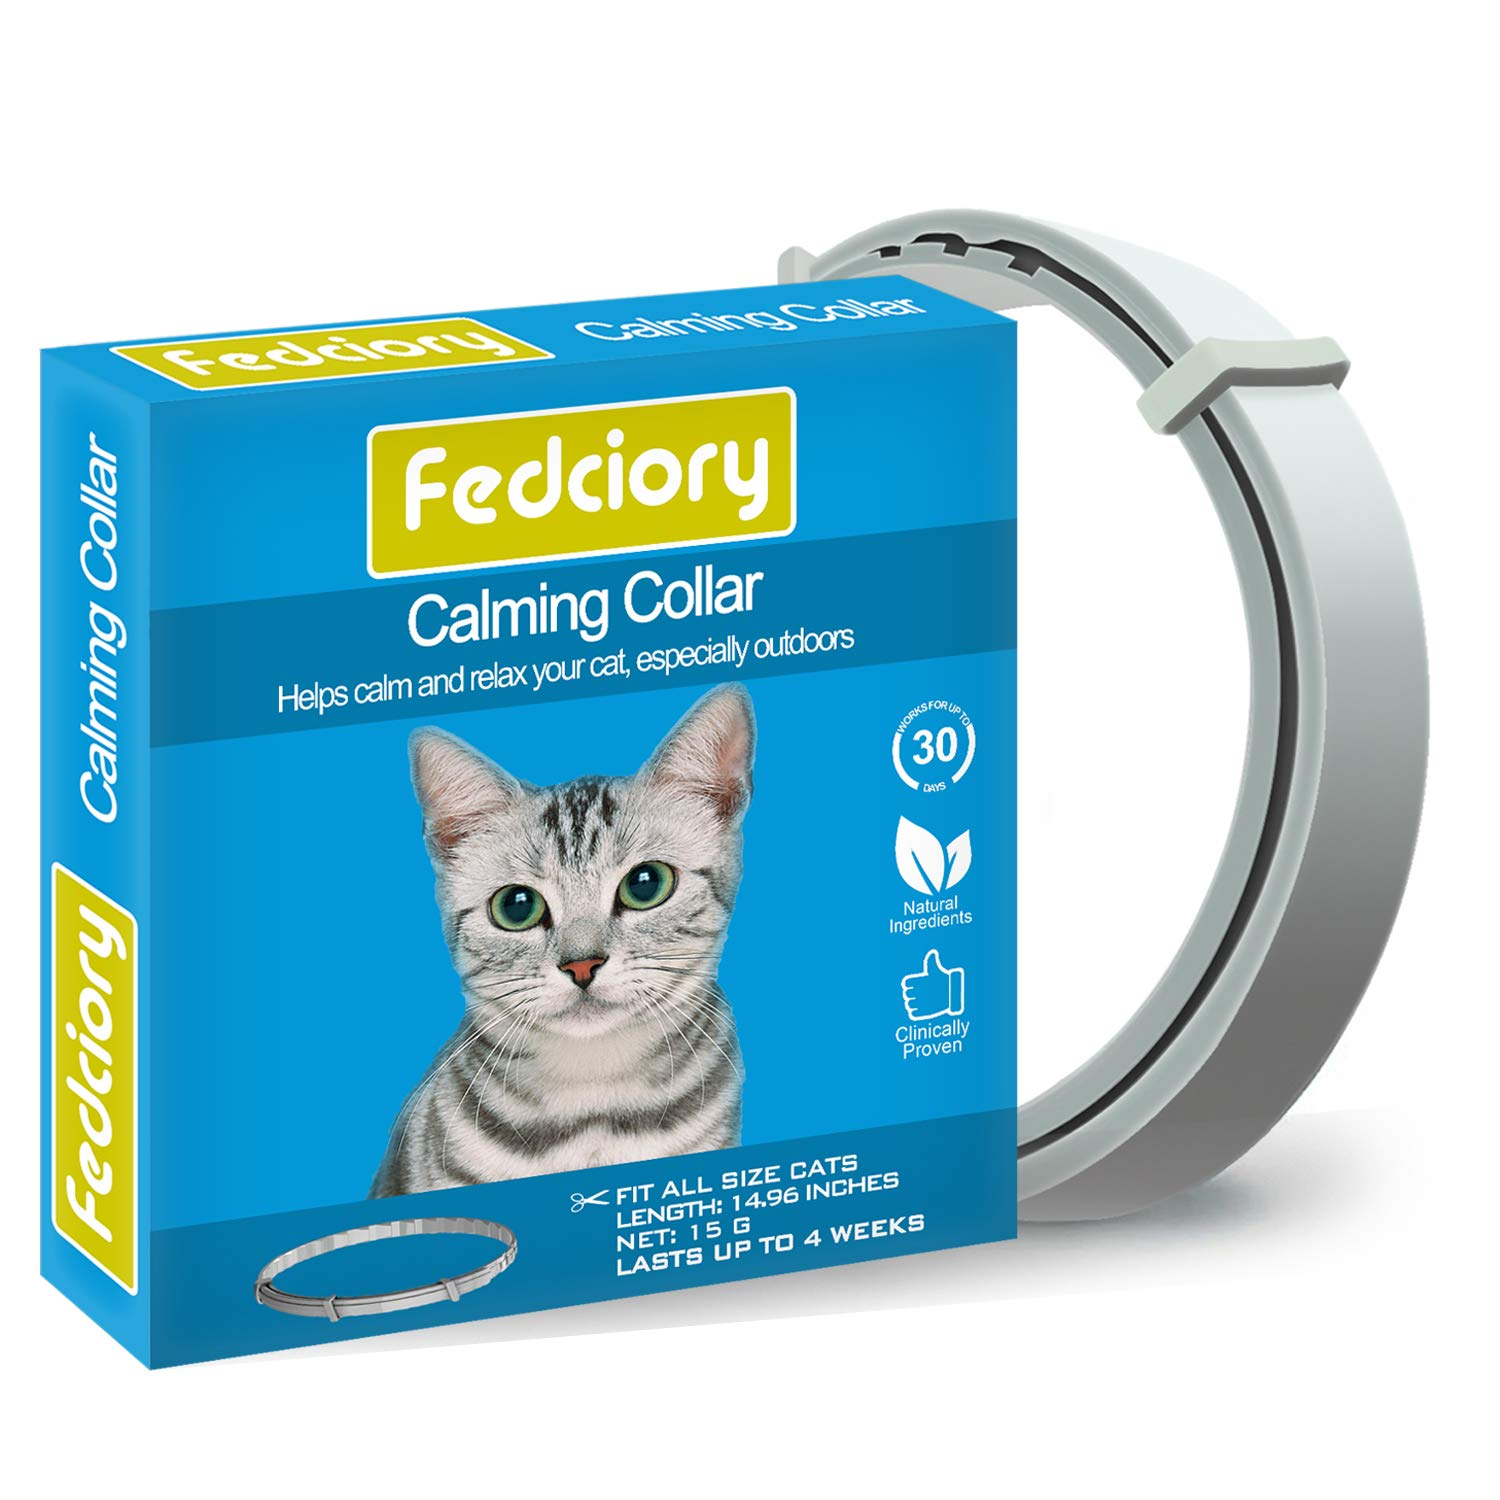 Fedciory Calming Collar for Cats, Adjustable Relieve Reduce Anxiety Pheromone Your Pet Lasting Natural Calm Collarup to 15'' Fits Cat by Fedciory